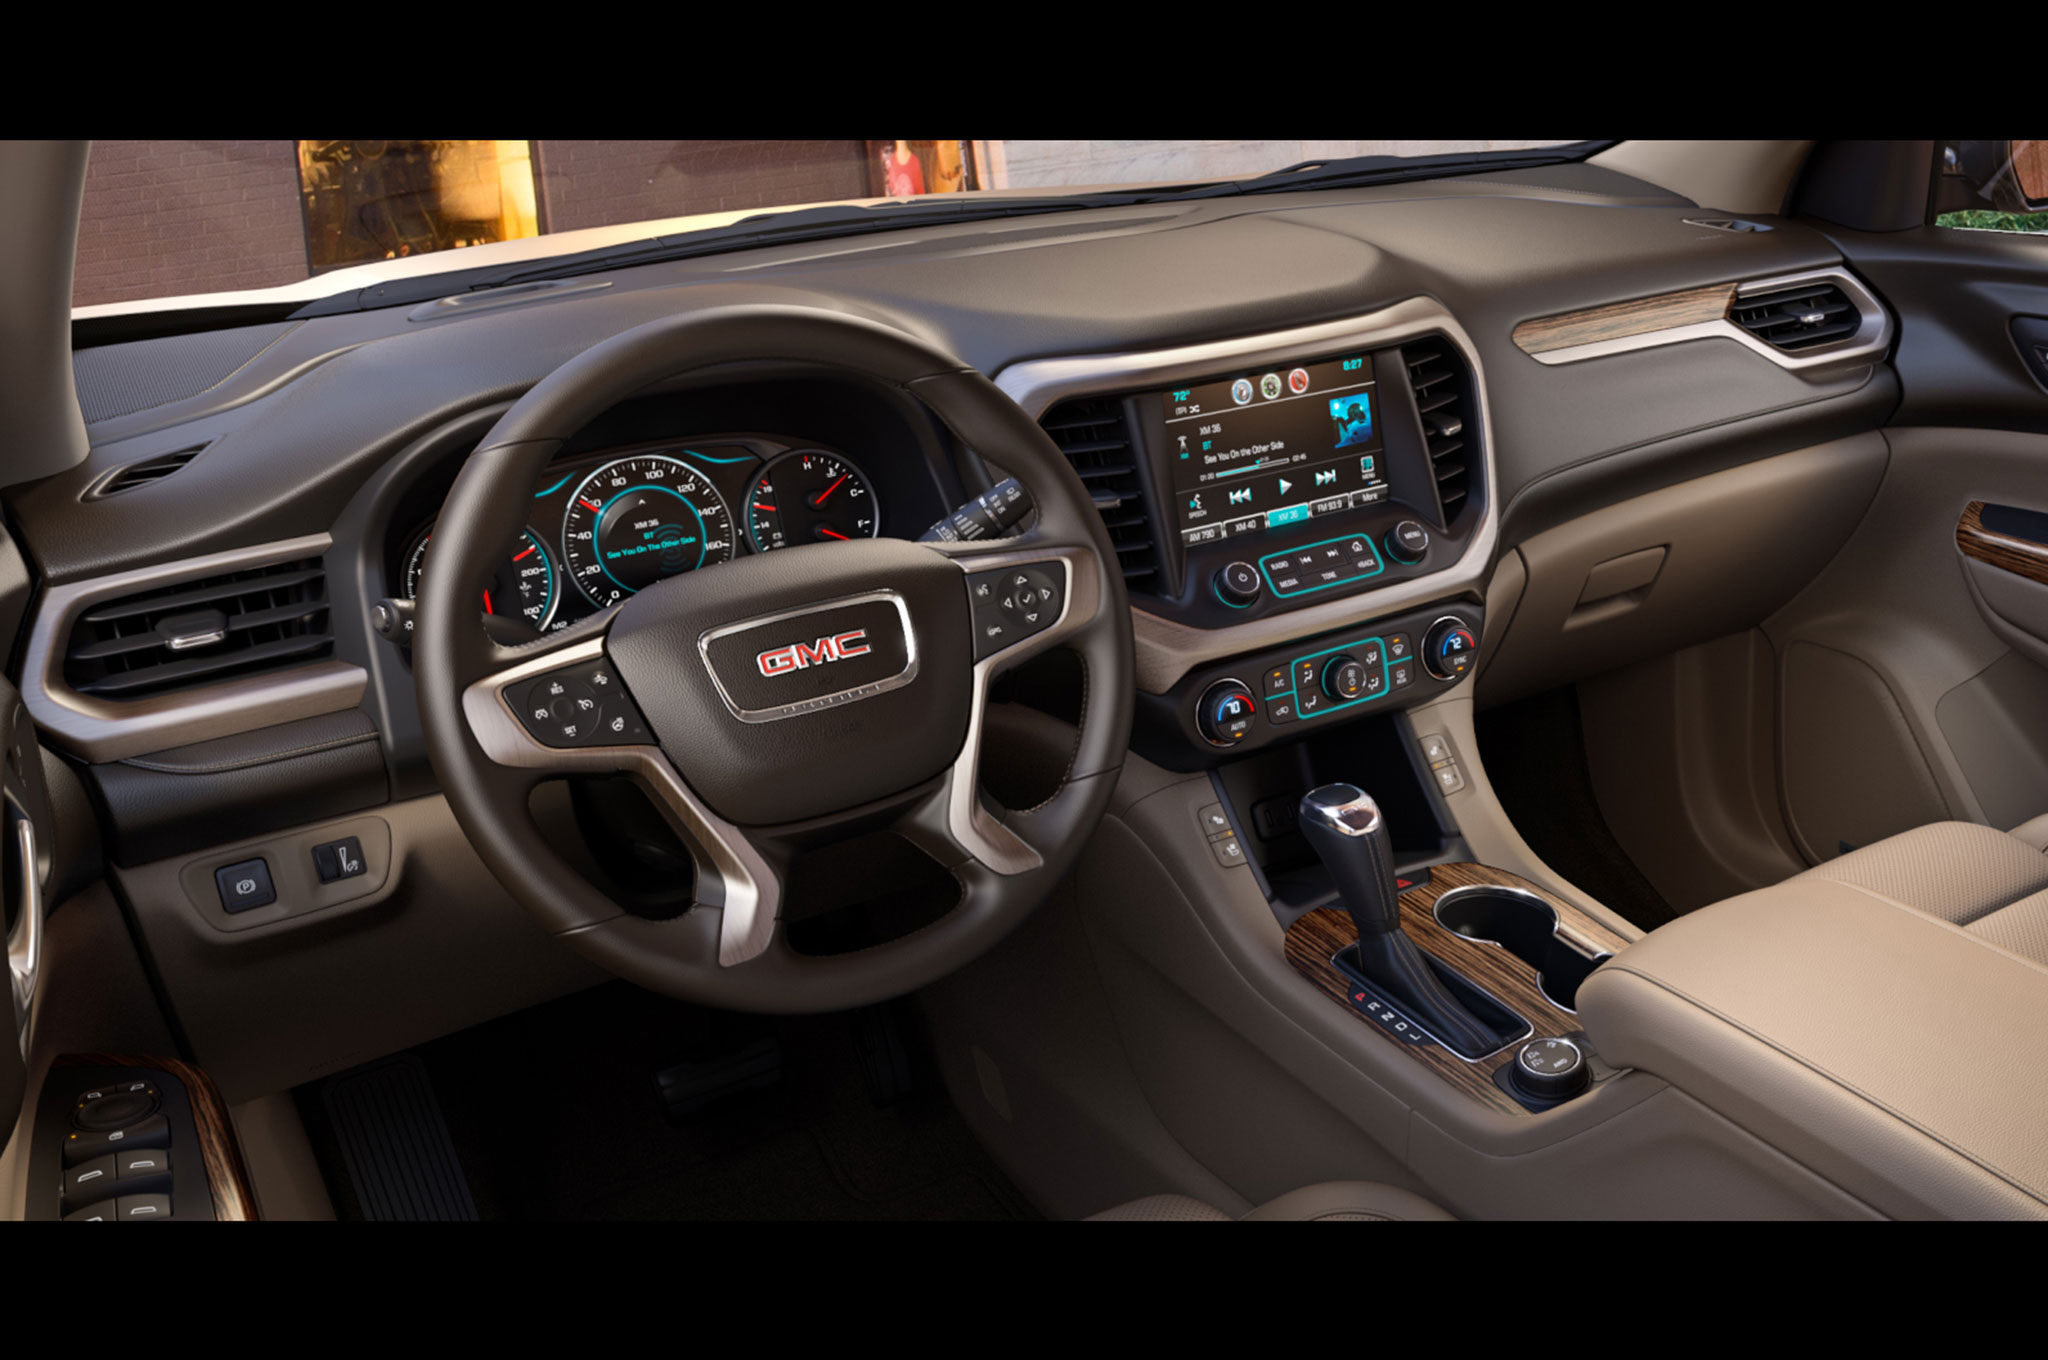 gmc acadia 2015 interior. show more gmc acadia 2015 interior